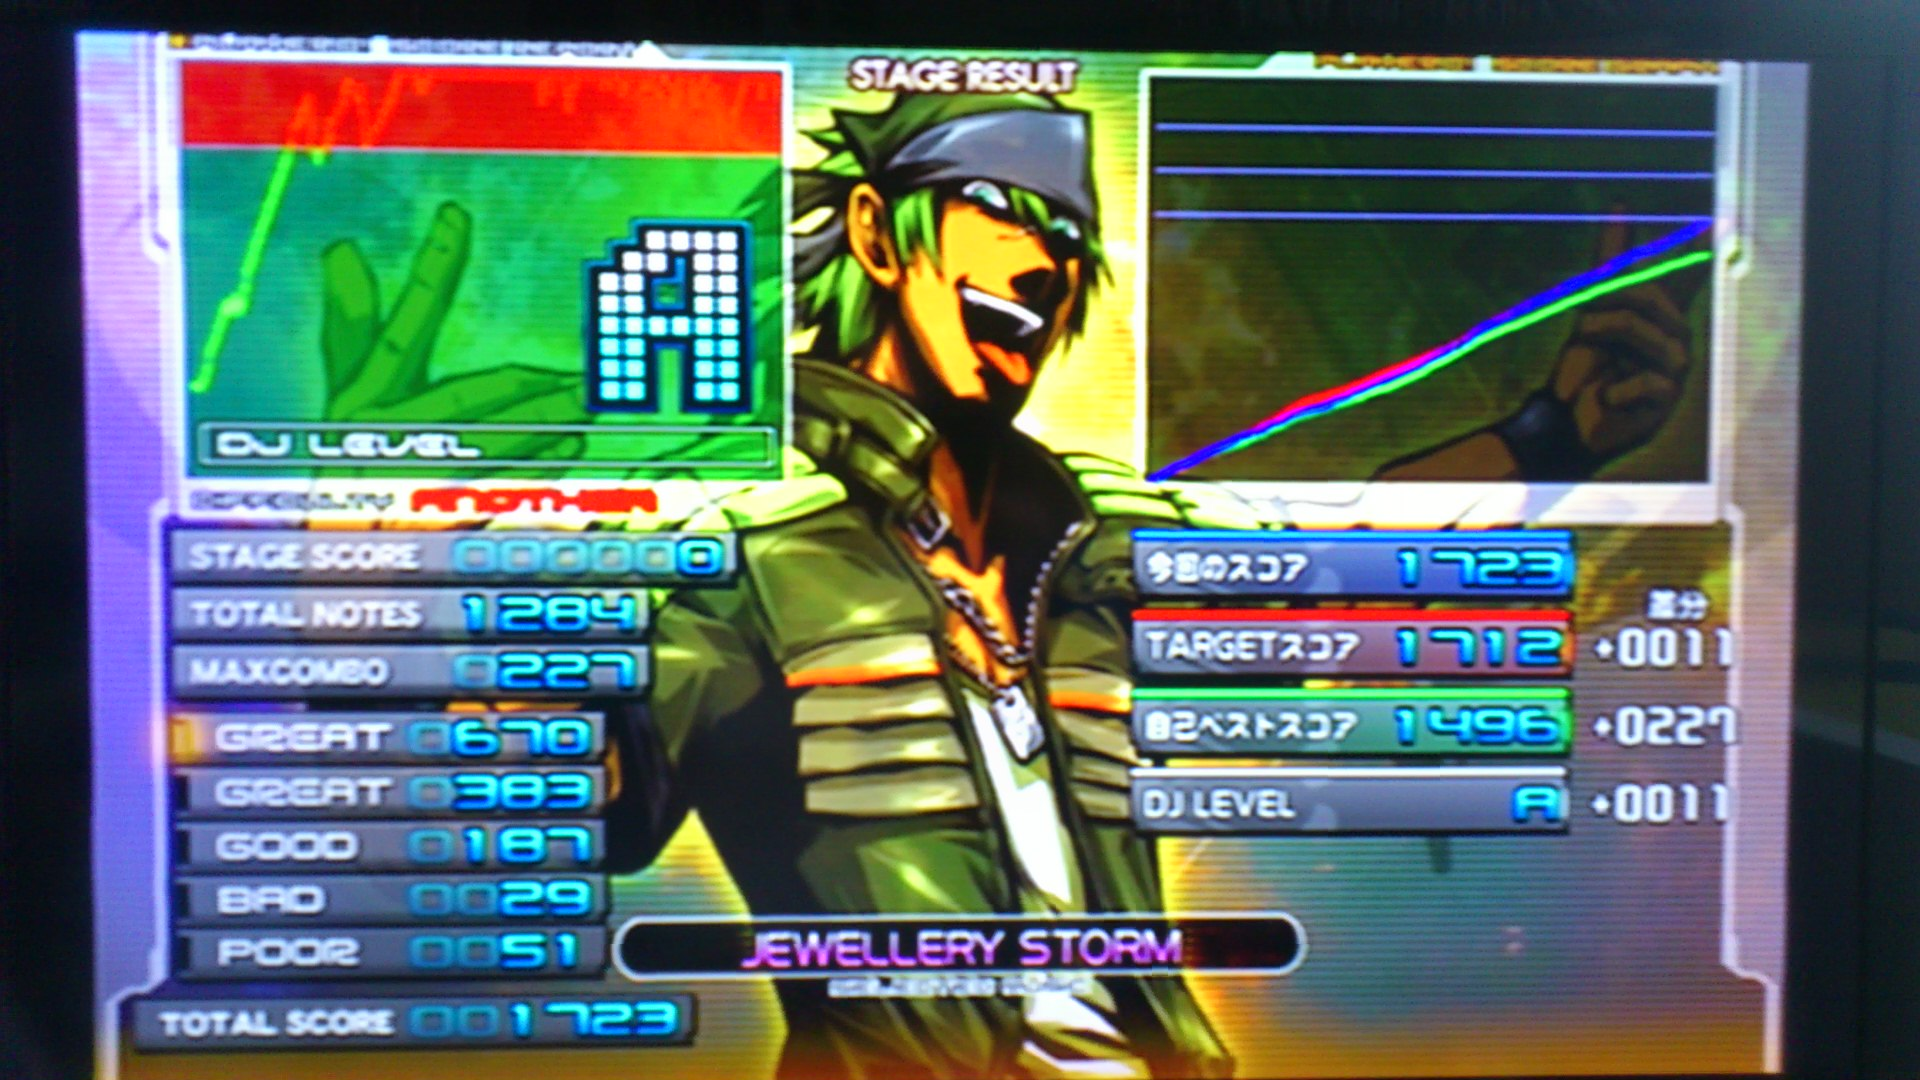 JEWELLERY STORM(A)ノマゲ